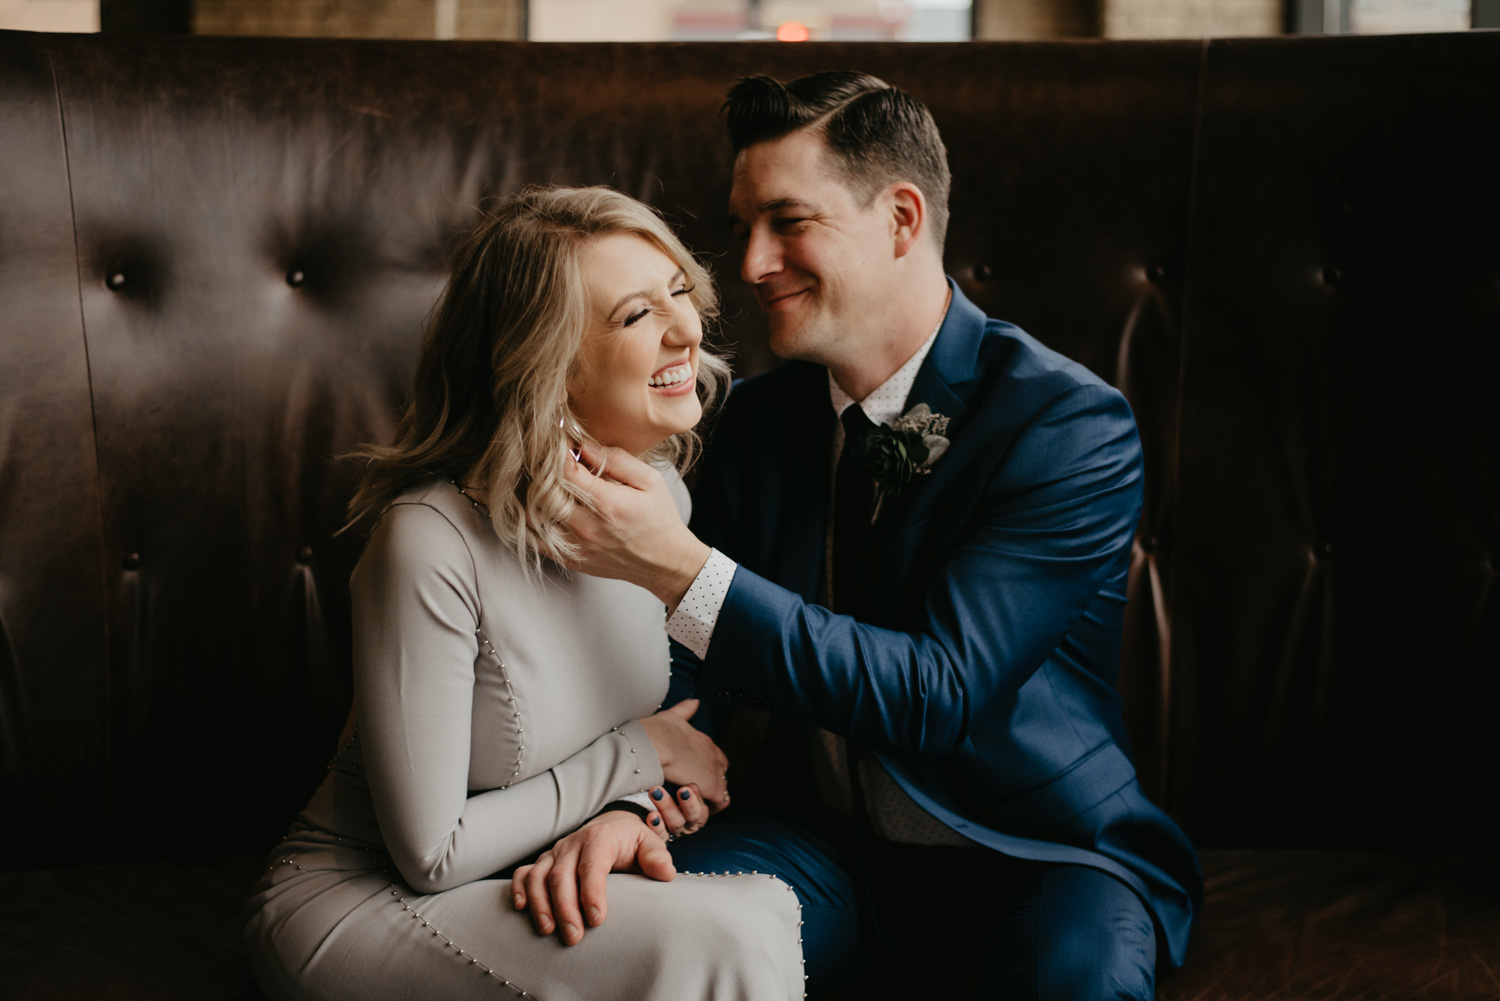 Bride and groom cuddling indoors on couch Hewing Hotel Minneapolis